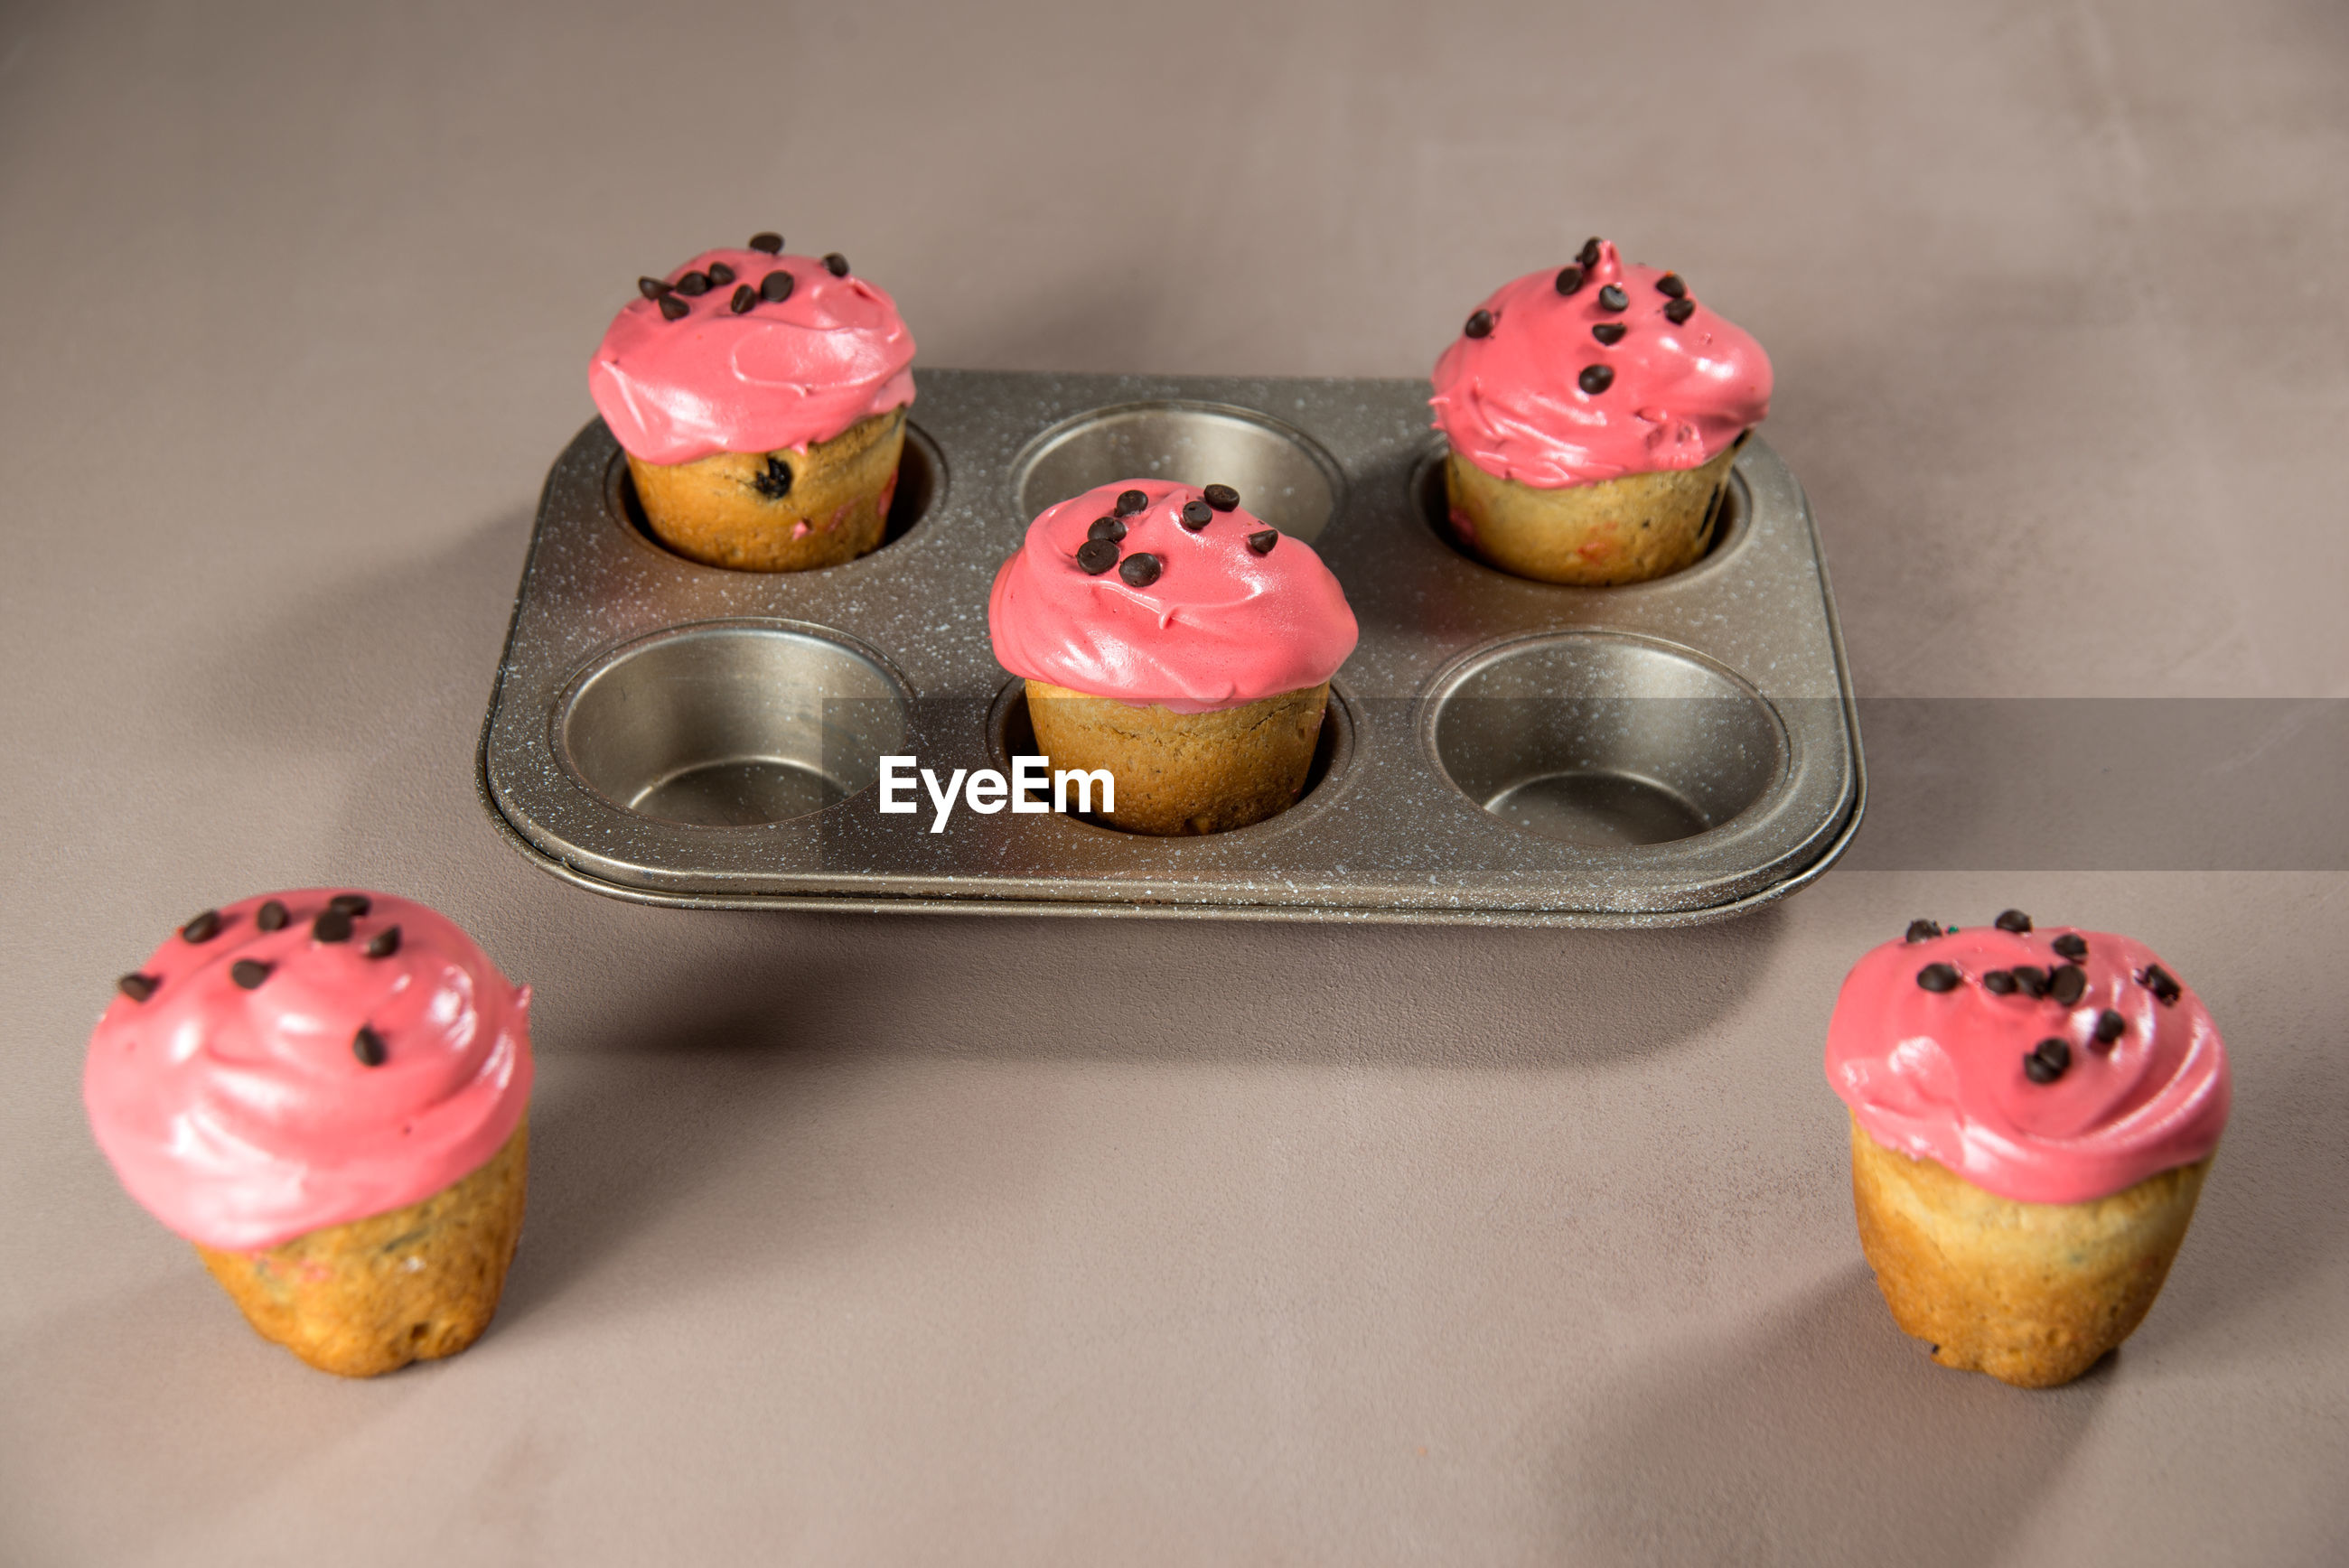 HIGH ANGLE VIEW OF CUPCAKES WITH ICE CREAM